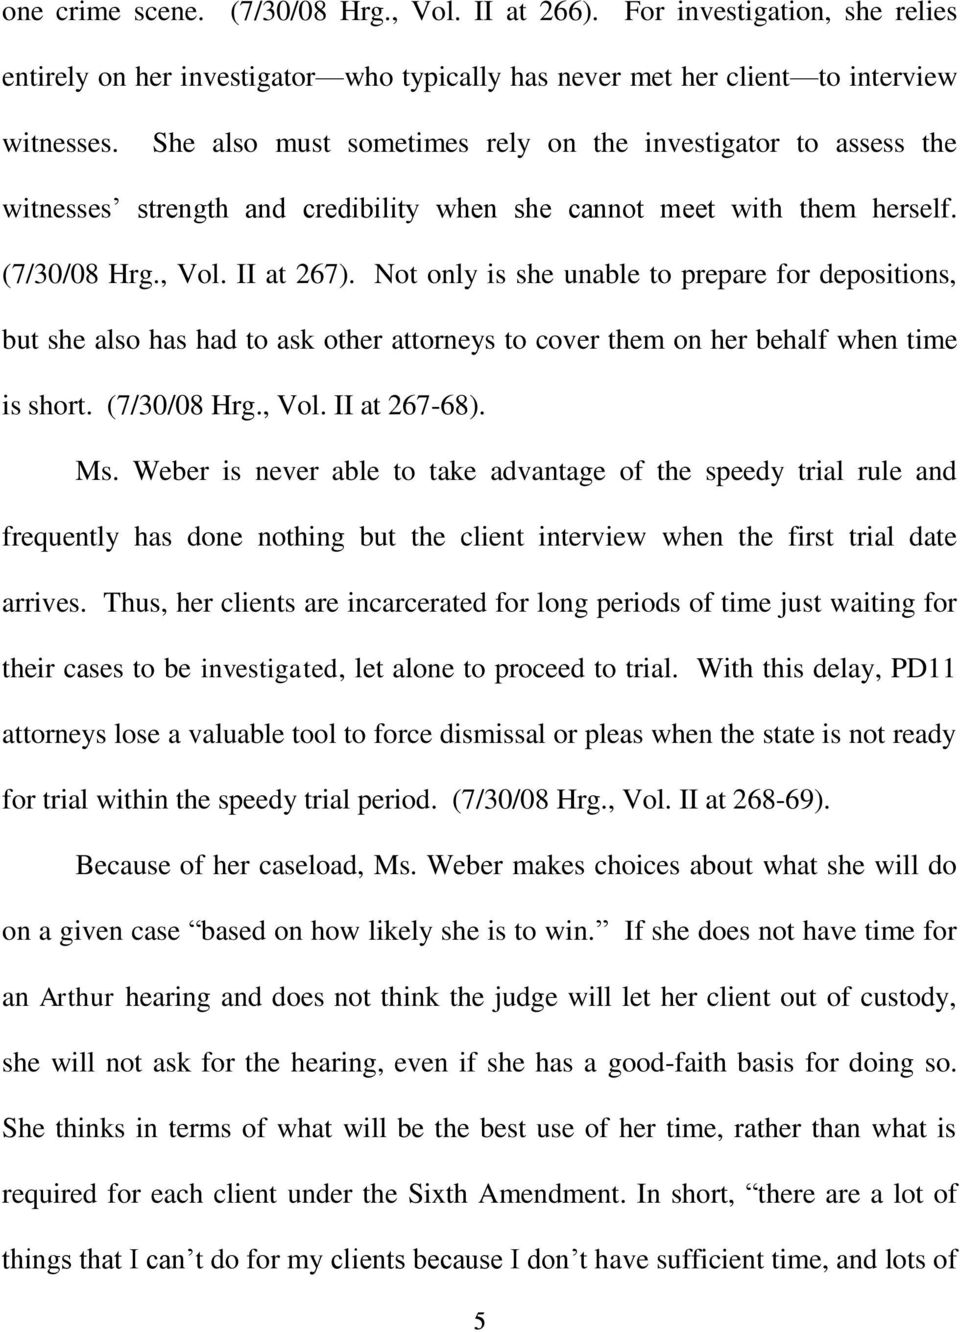 Not only is she unable to prepare for depositions, but she also has had to ask other attorneys to cover them on her behalf when time is short. (7/30/08 Hrg., Vol. II at 267-68). Ms.